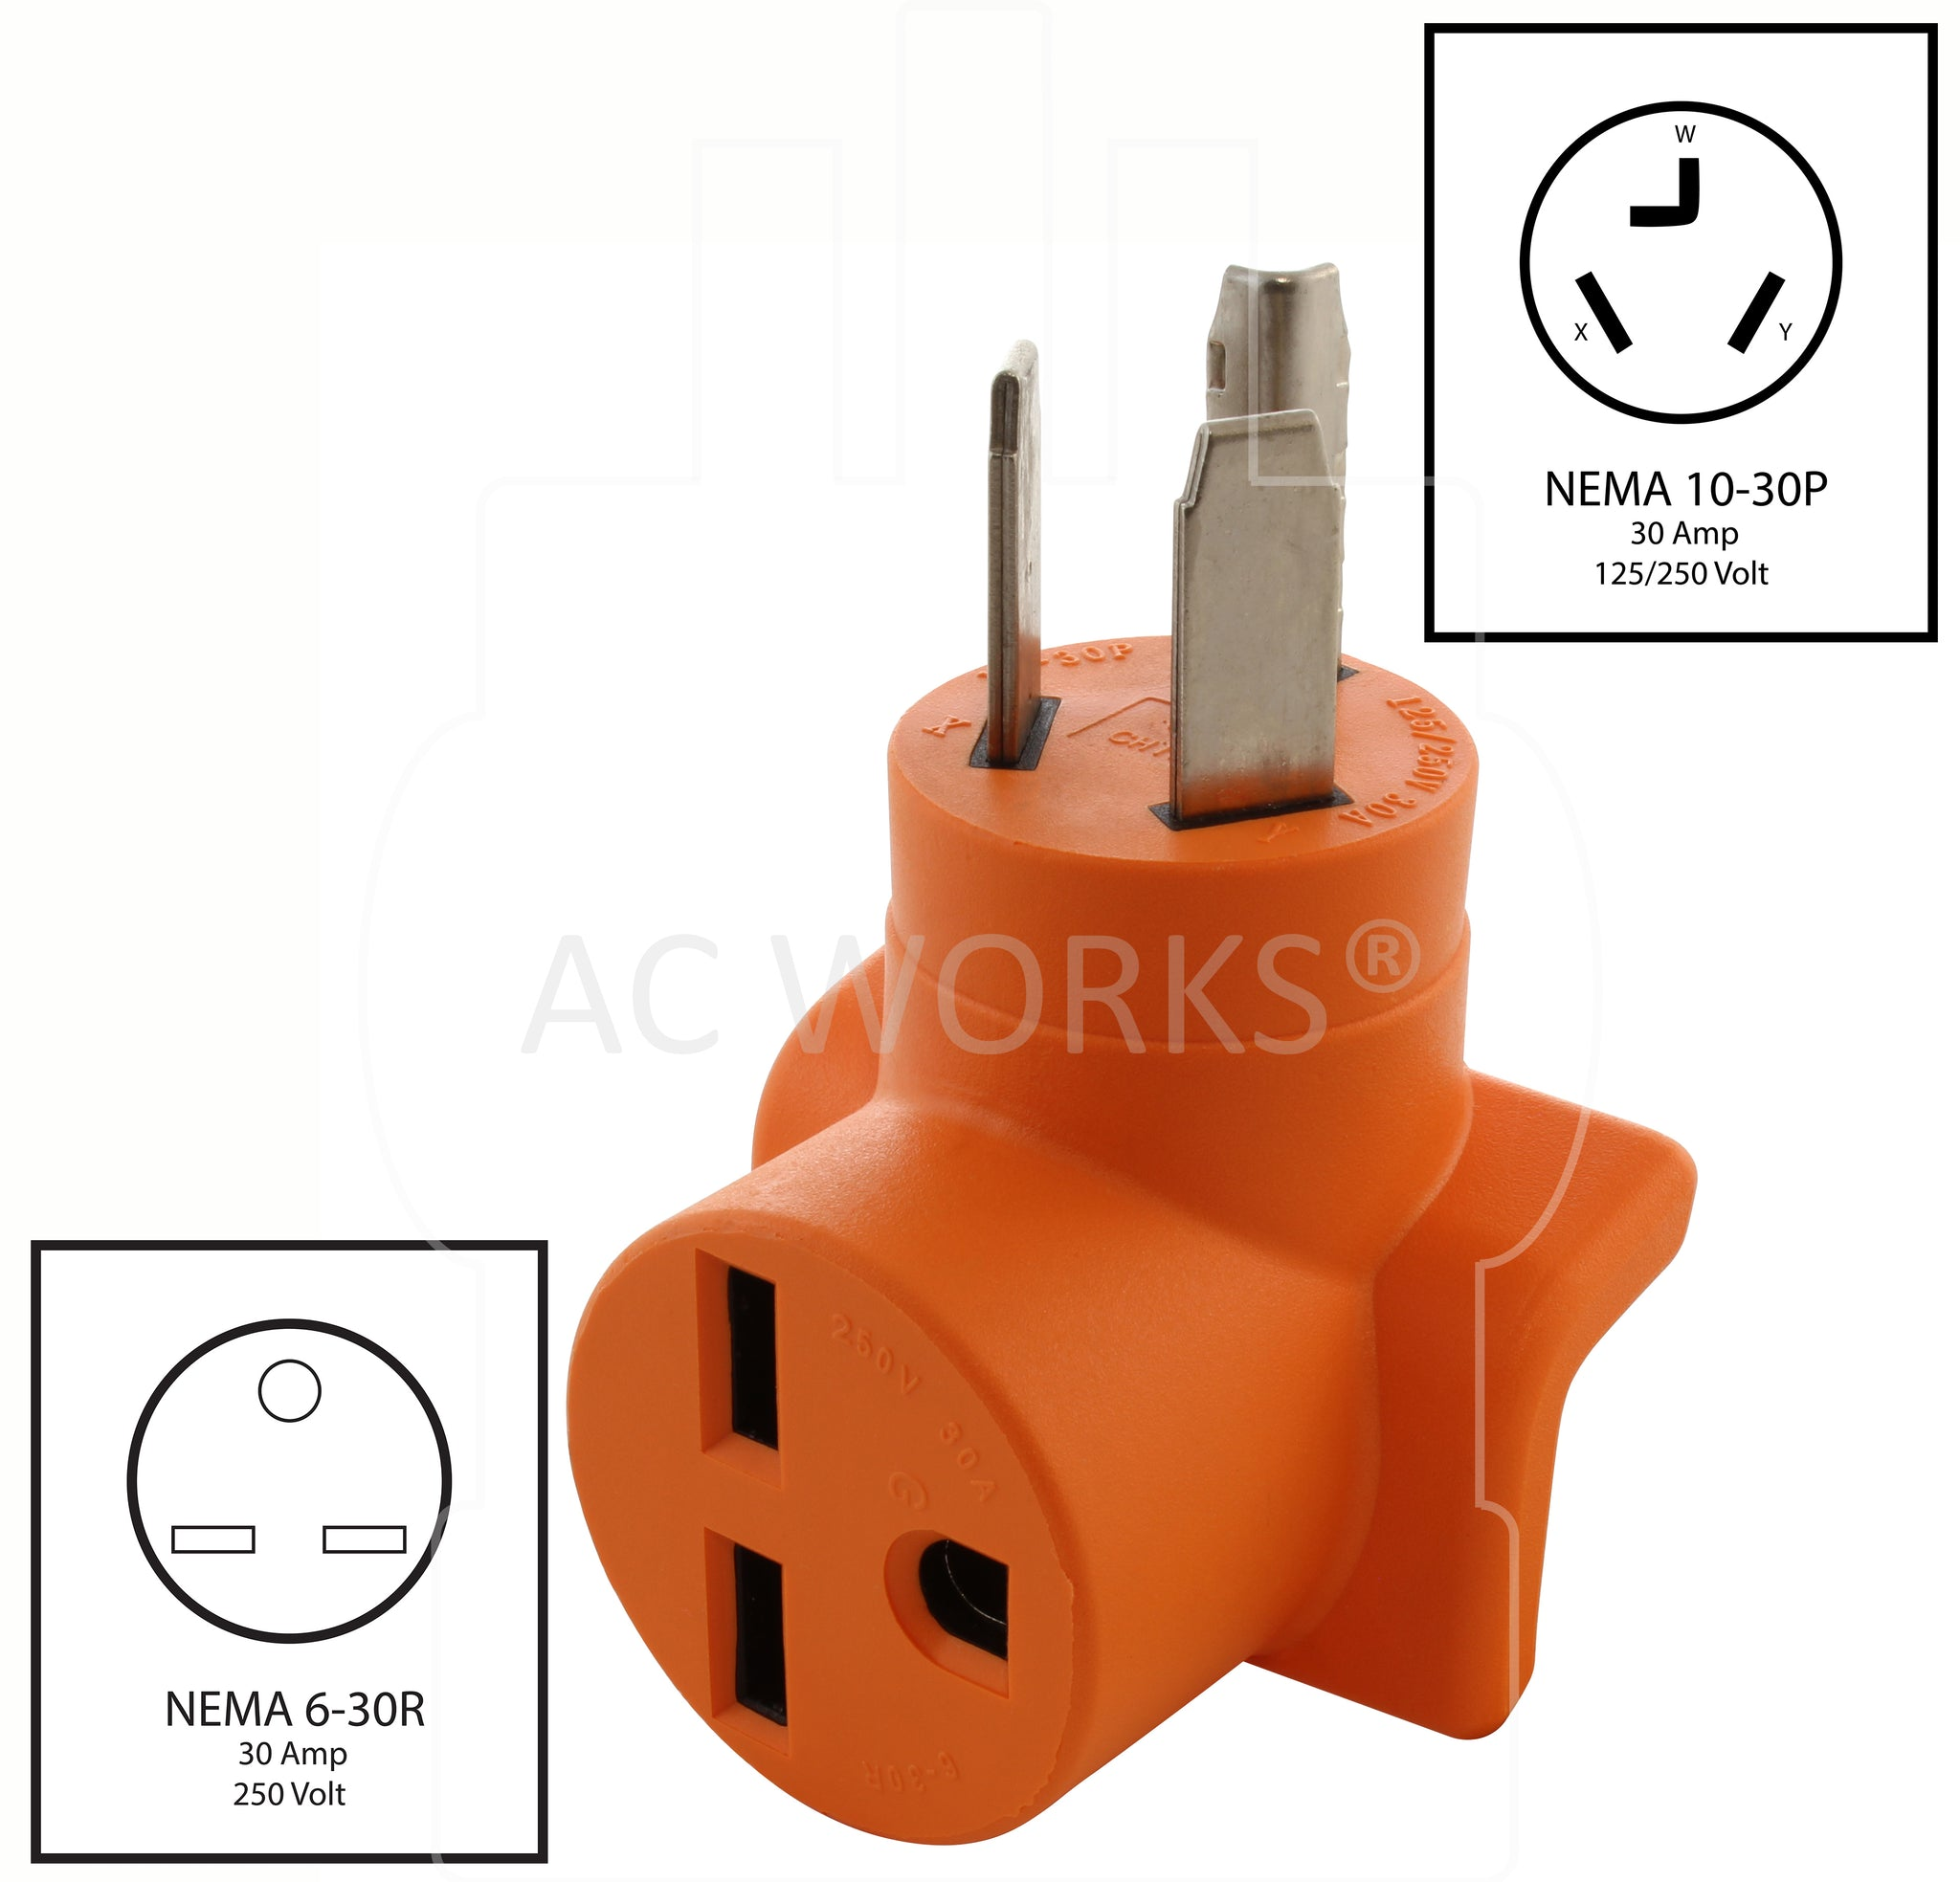 30 Amp NEMA 10-30P to 30 Amp NEMA 6-30R Electrical Outlet Adapter by AC WORKS®